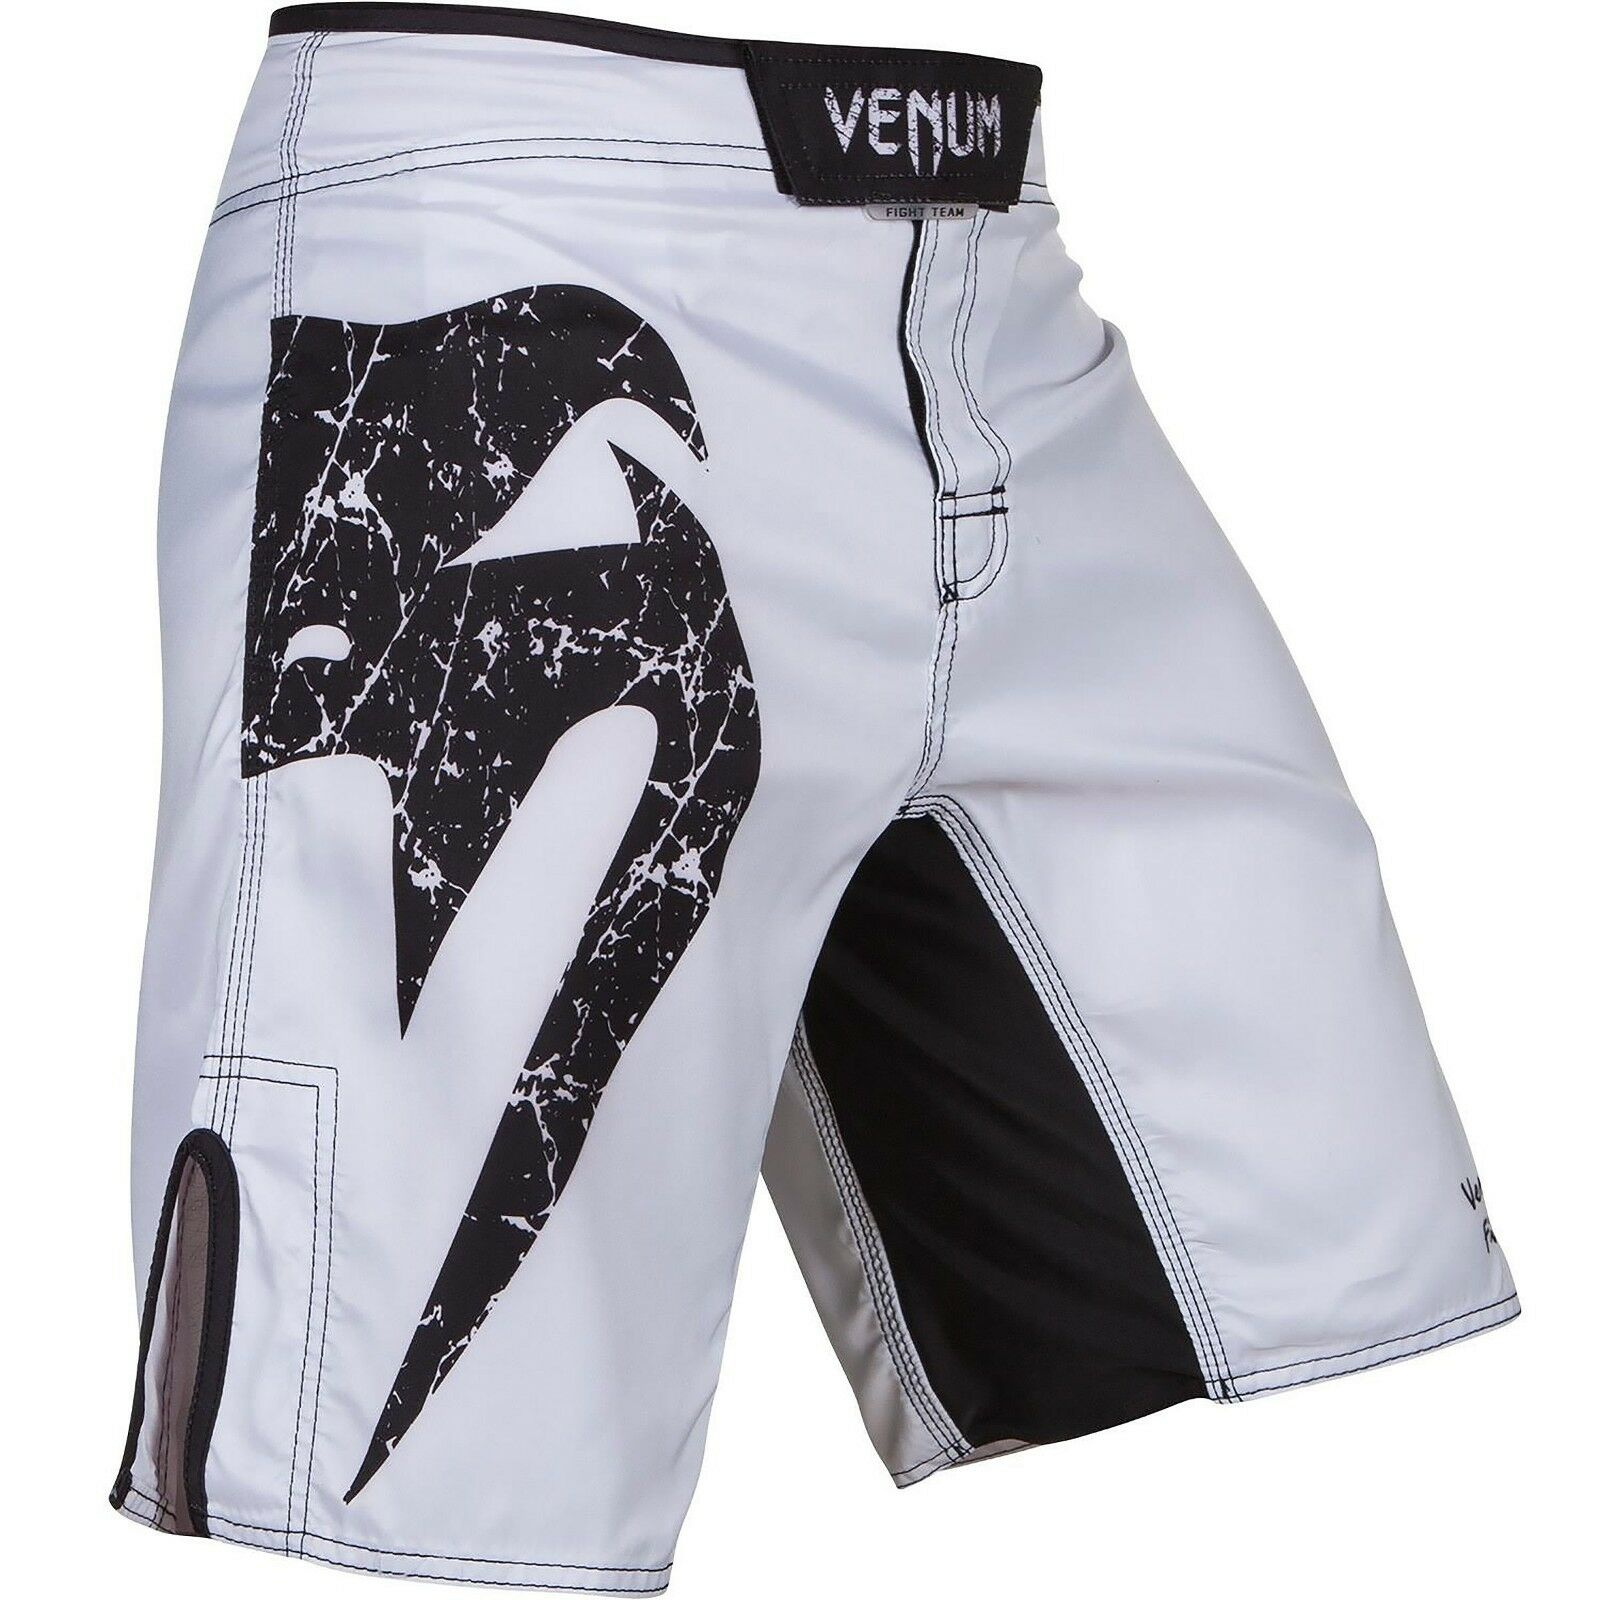 Venum Giant - MMA Fightshorts - Giant Weiß (Small) dd2f85